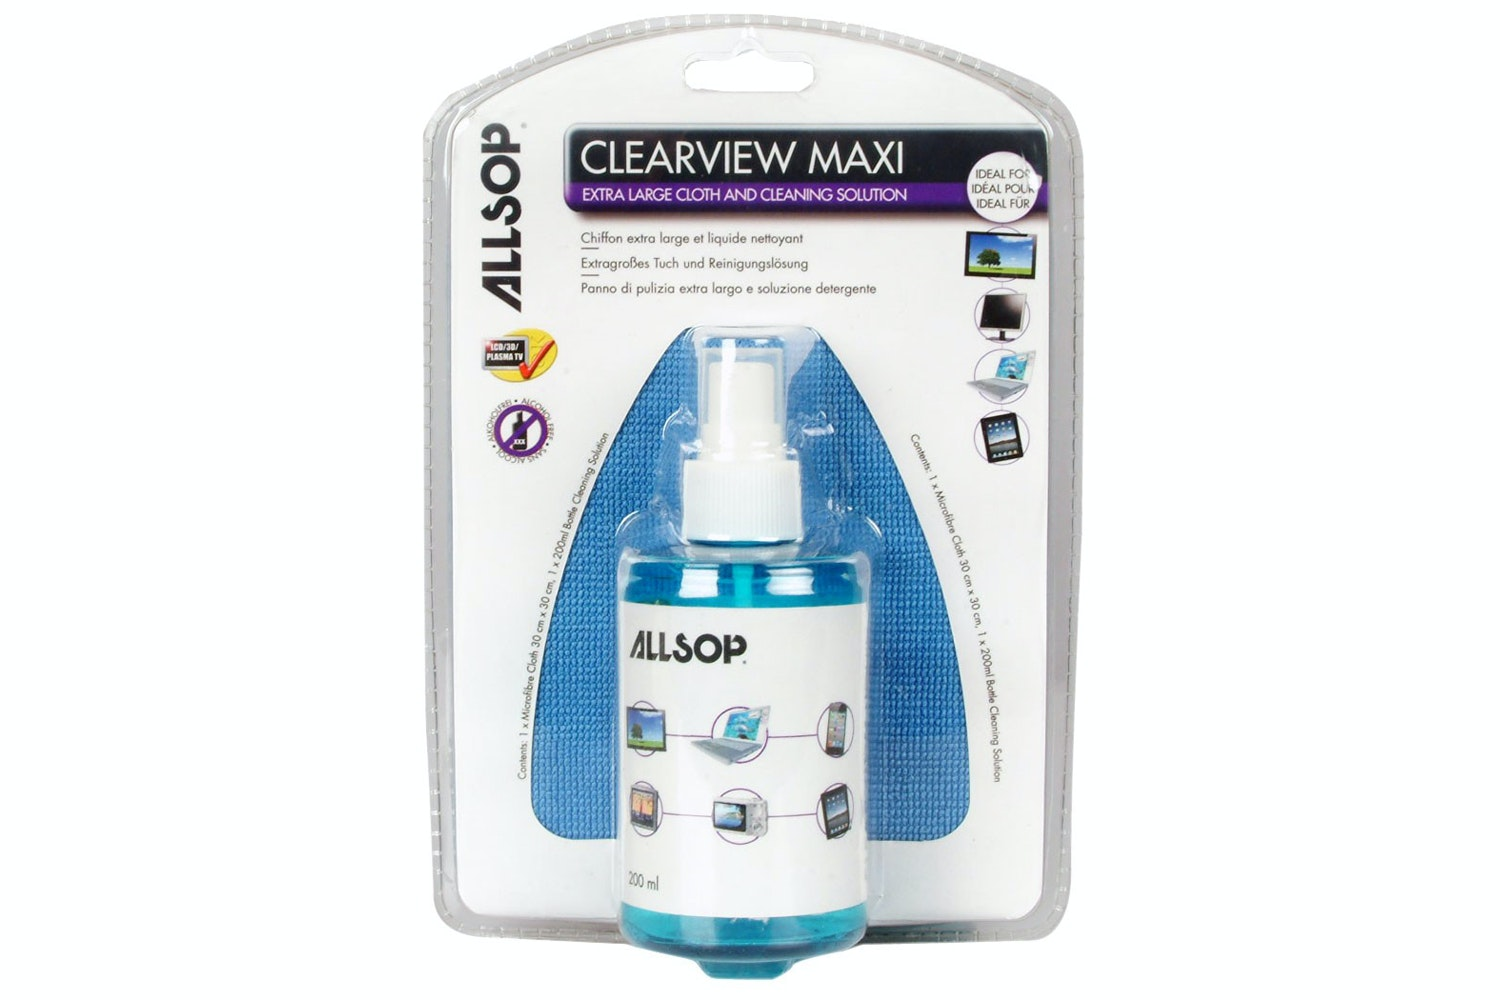 Allsop Cleaview Maxi Cleaning Solution